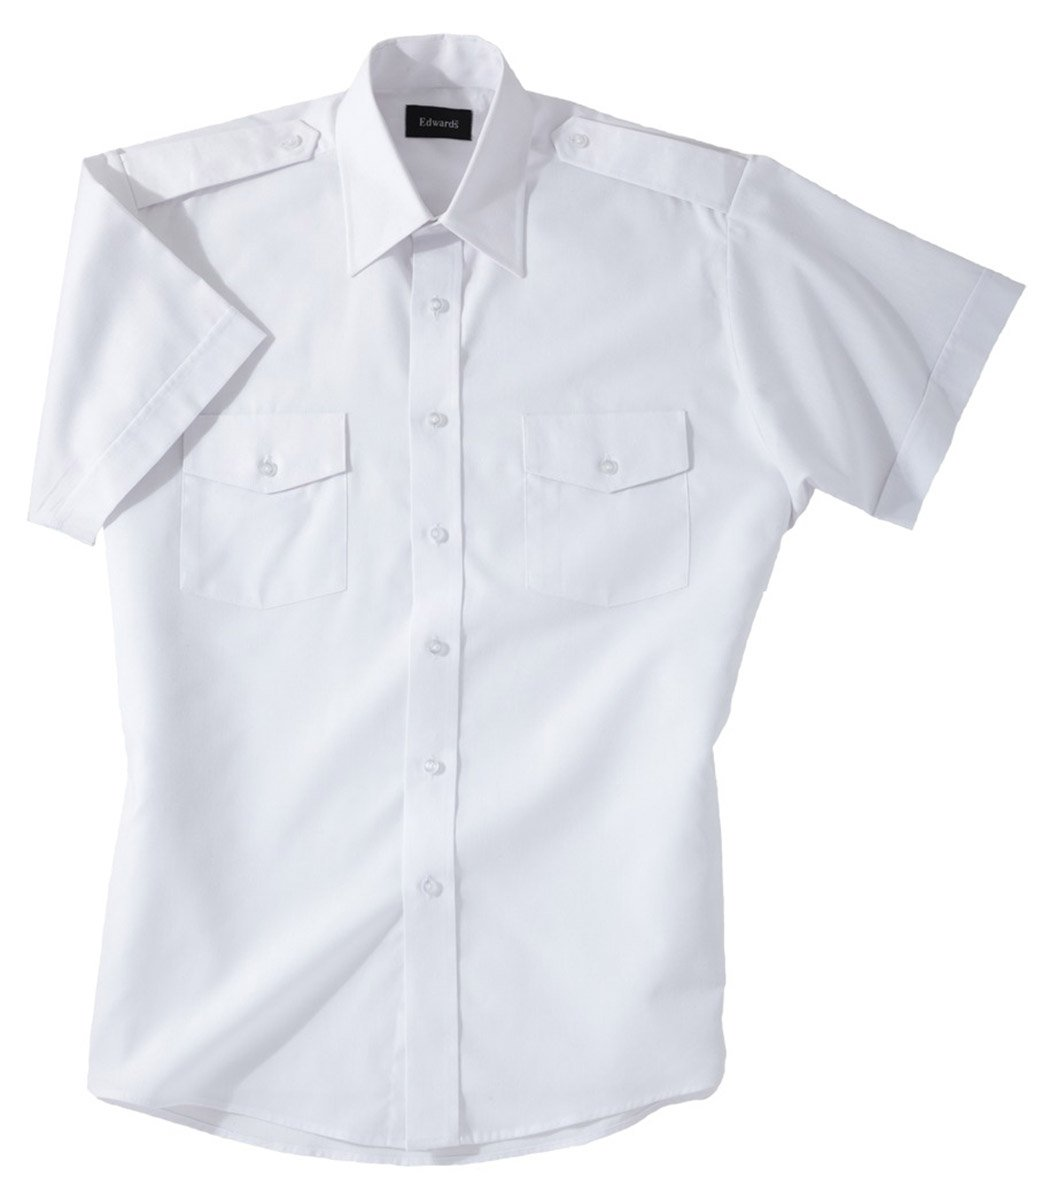 Edwards Garment Mens' Performance Security Shirts 1212